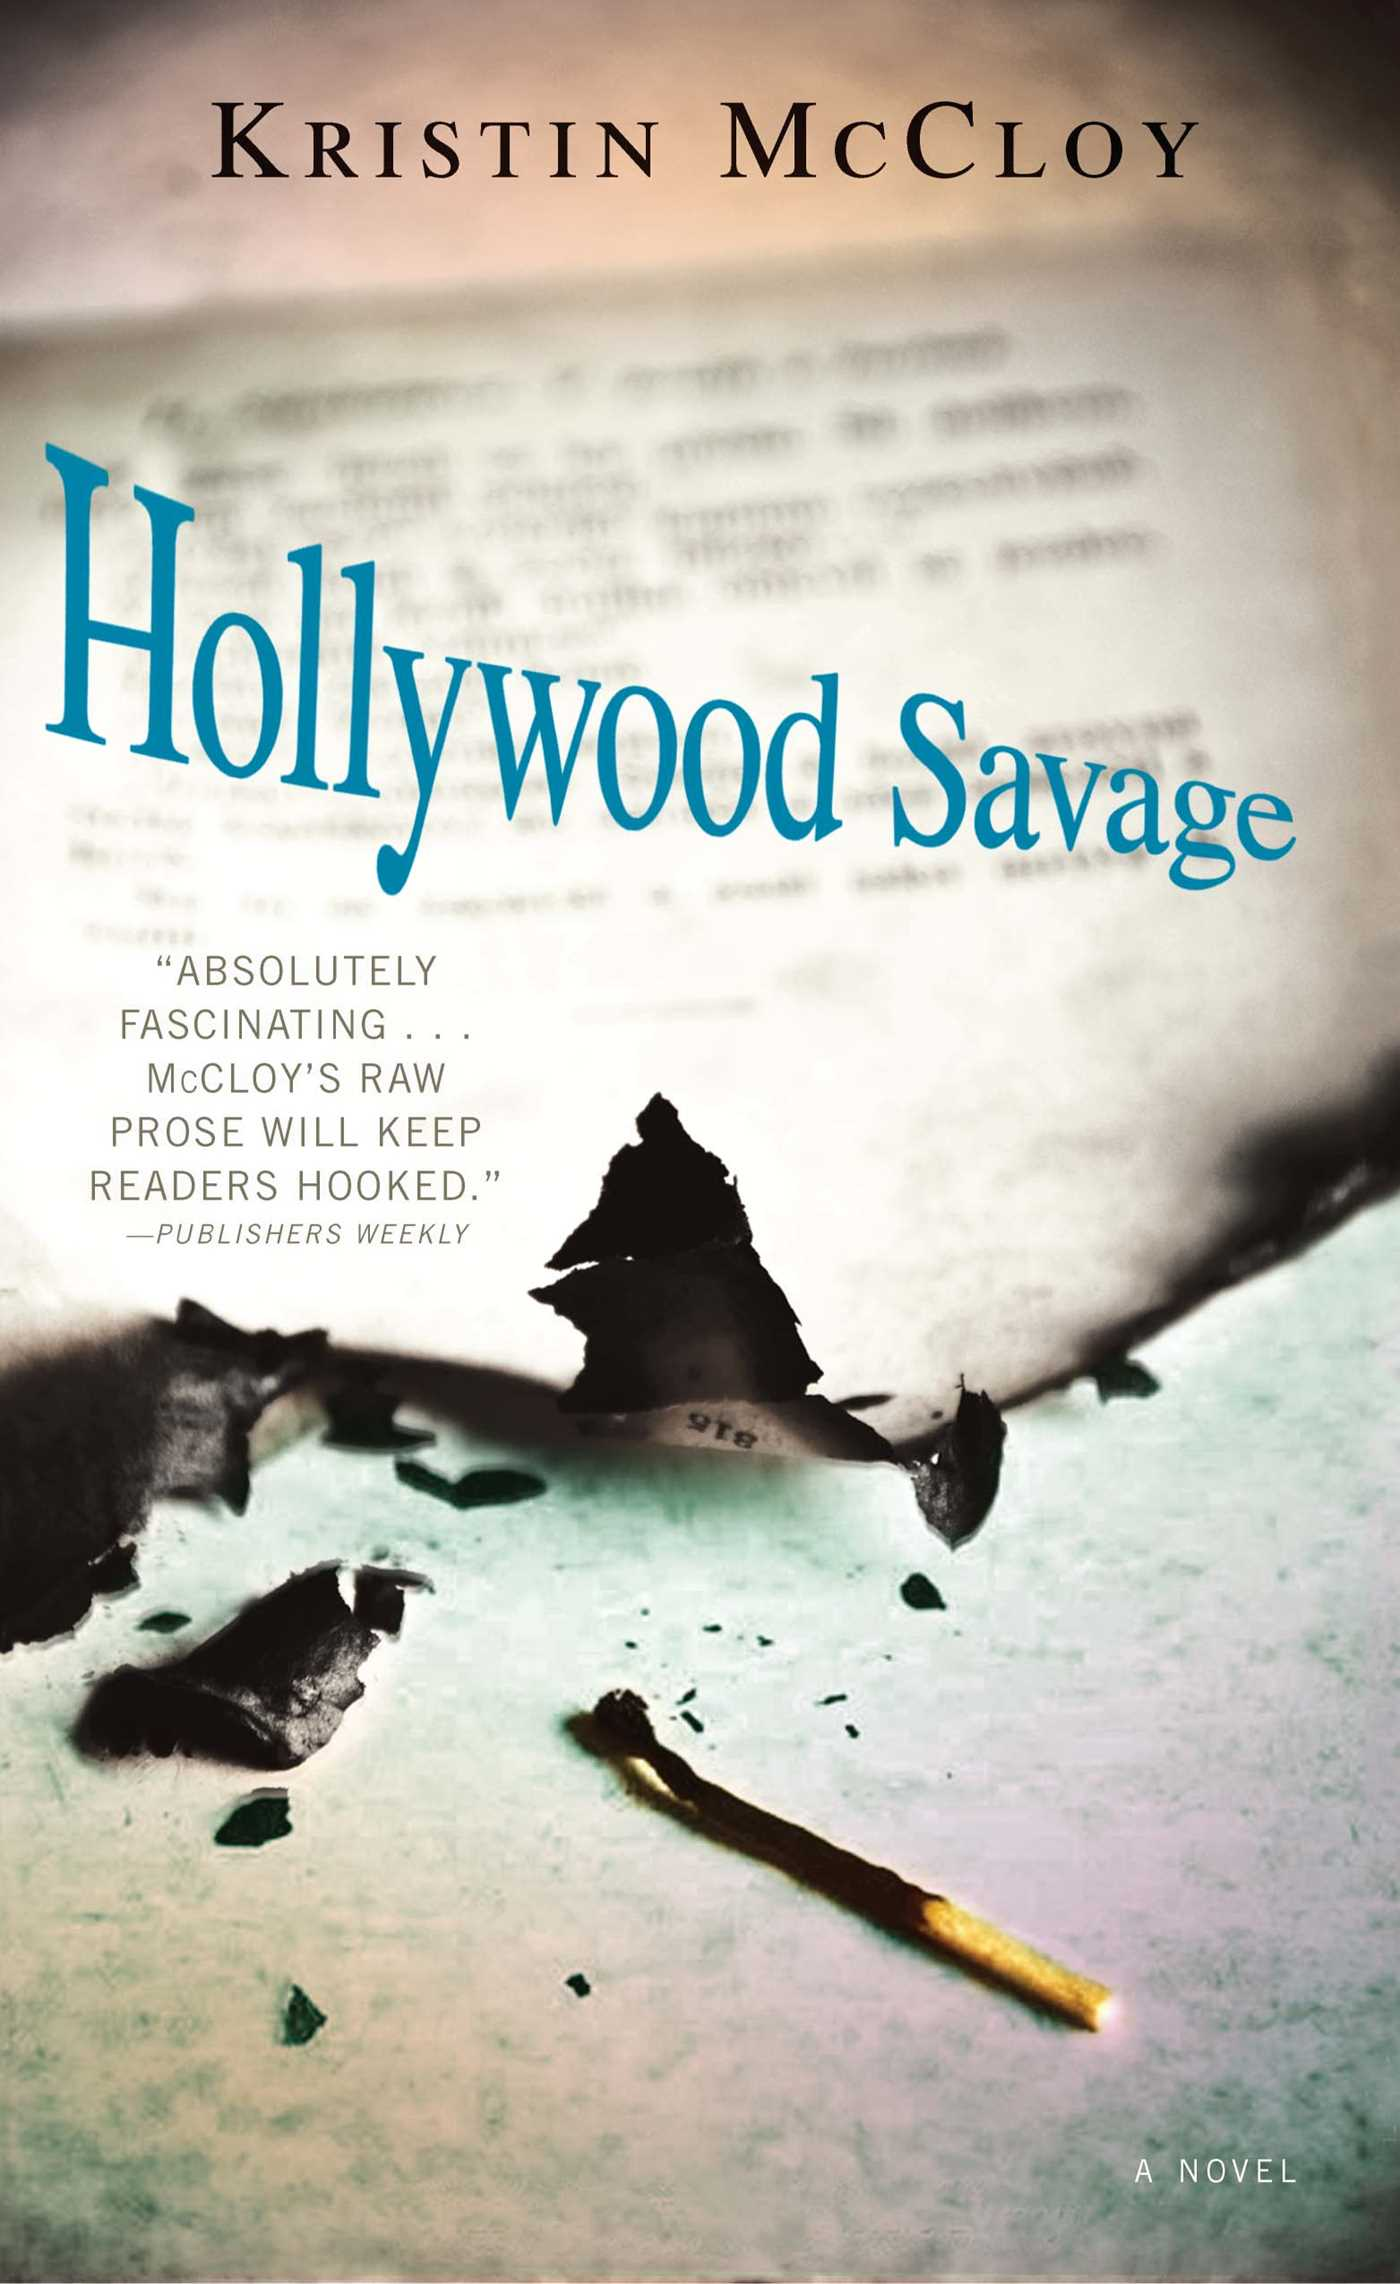 Hollywood-savage-9781439177167_hr